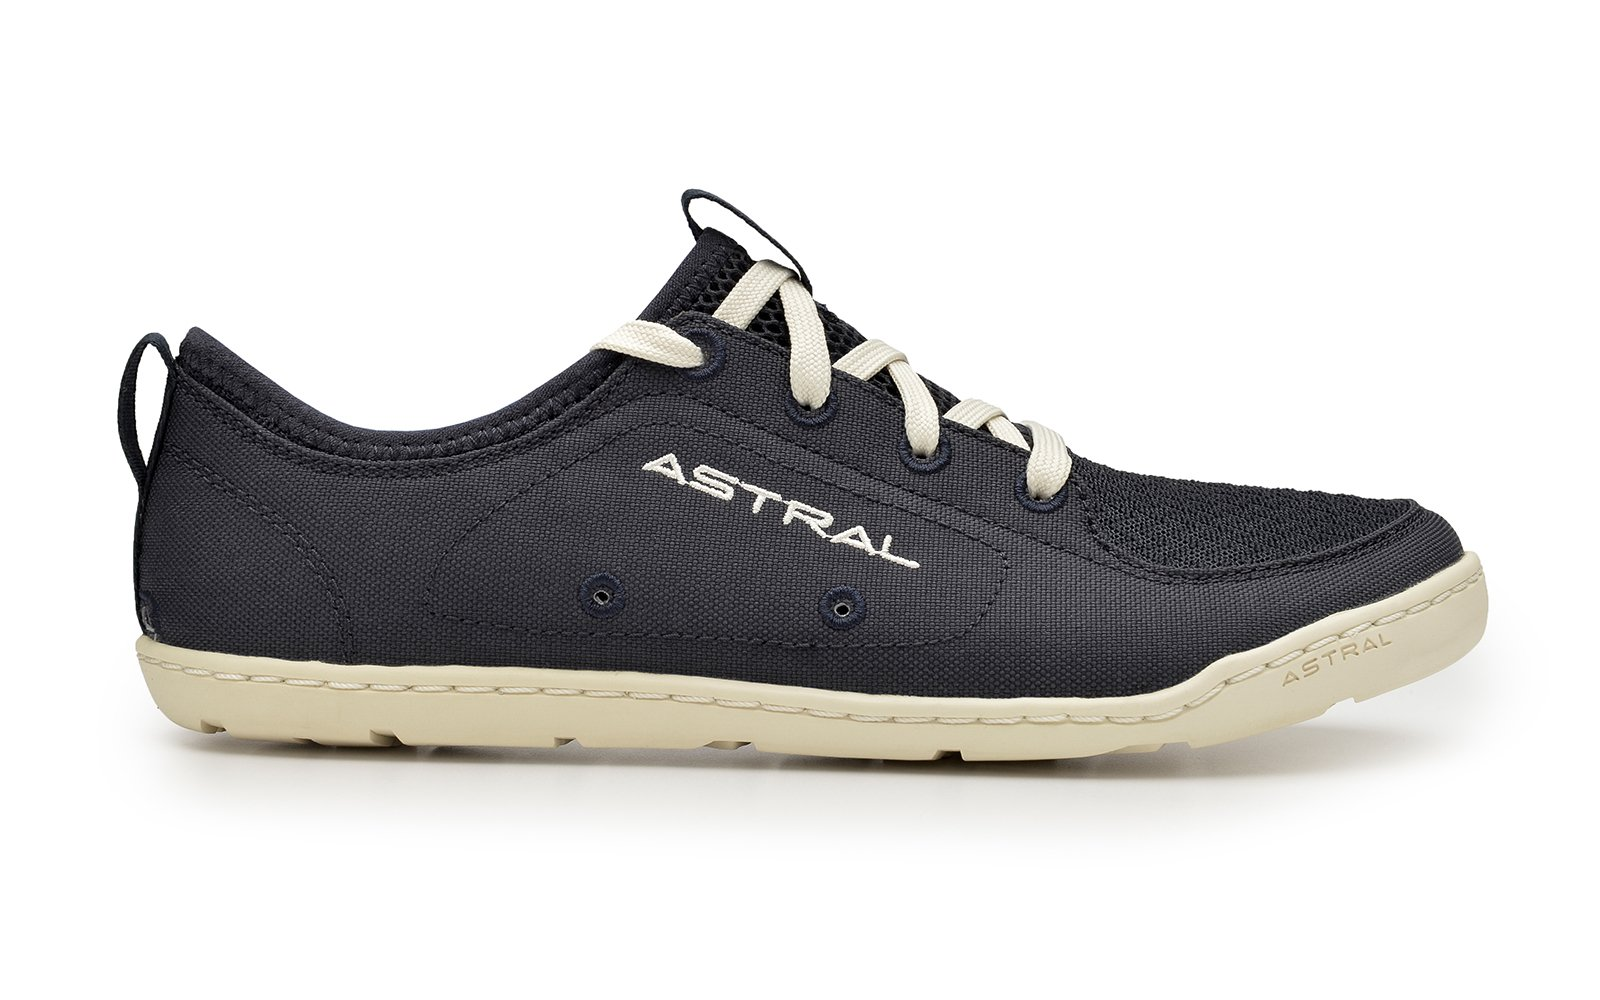 Astral Loyak Women's Water Shoes - Navy/White